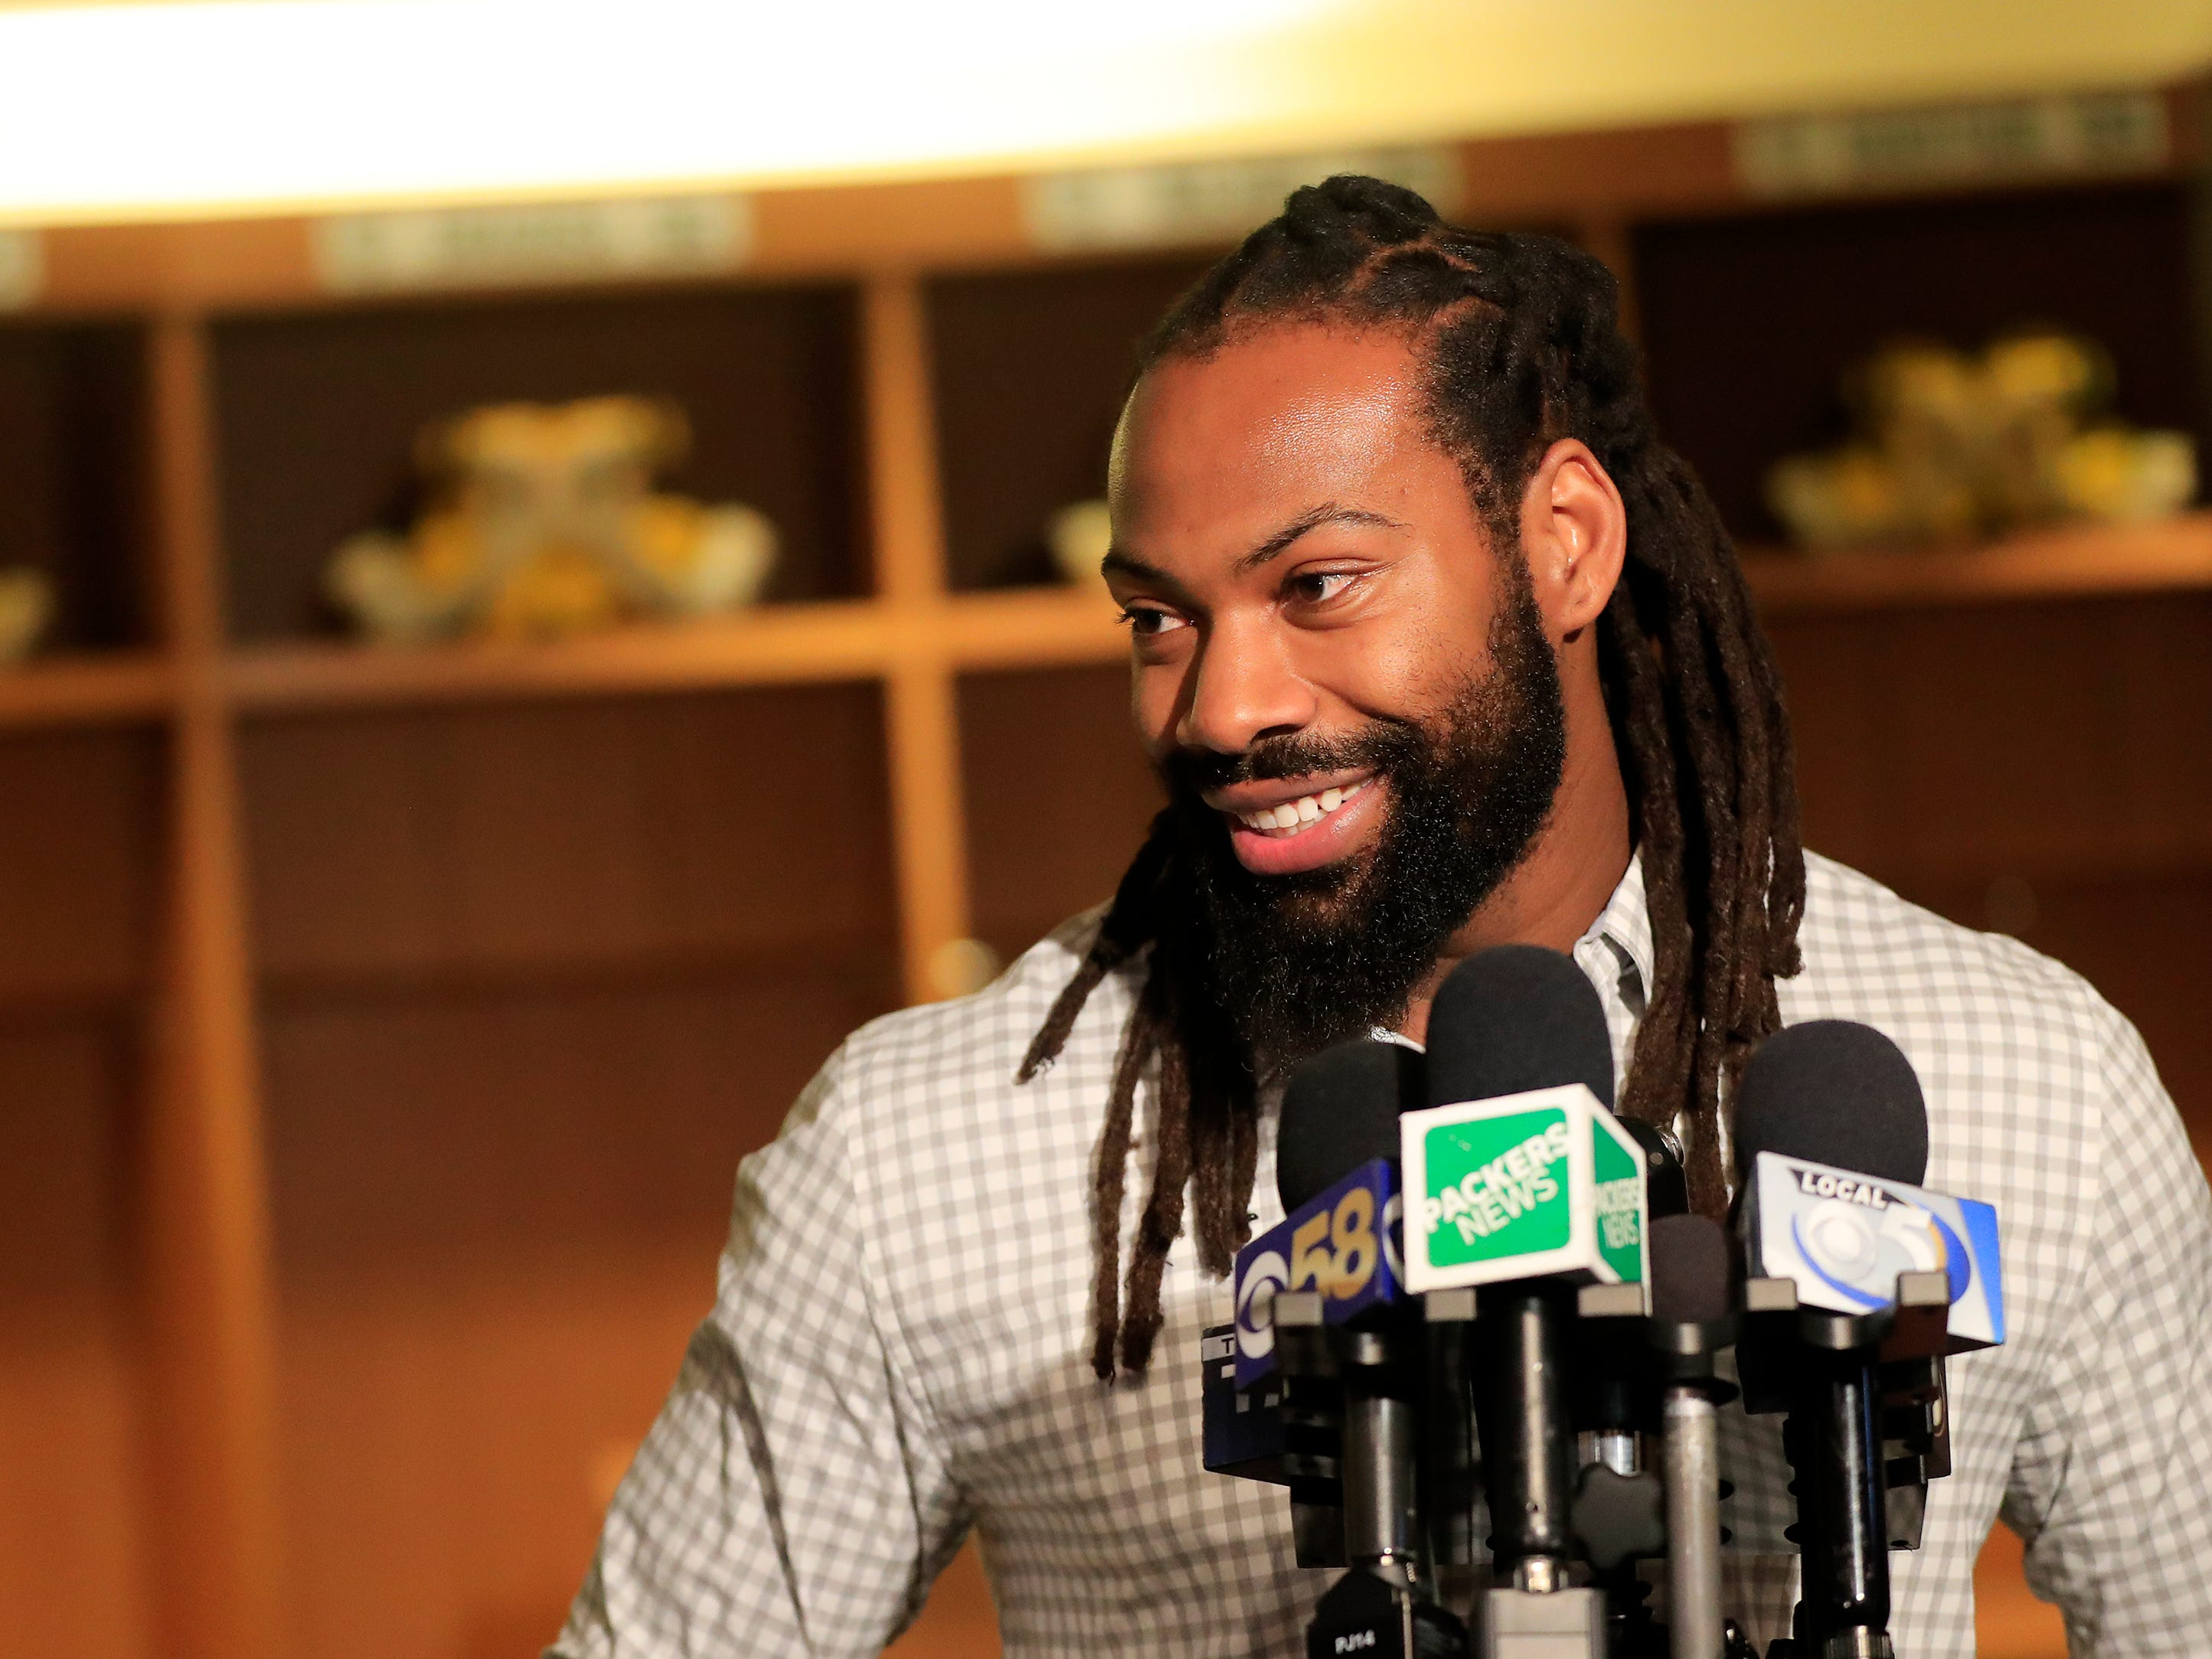 Green Bay Packers edge rusher Za'Darius Smith talks to members of the media at Lambeau Field on Thursday, March 14, 2019 in Green Bay, Wis.